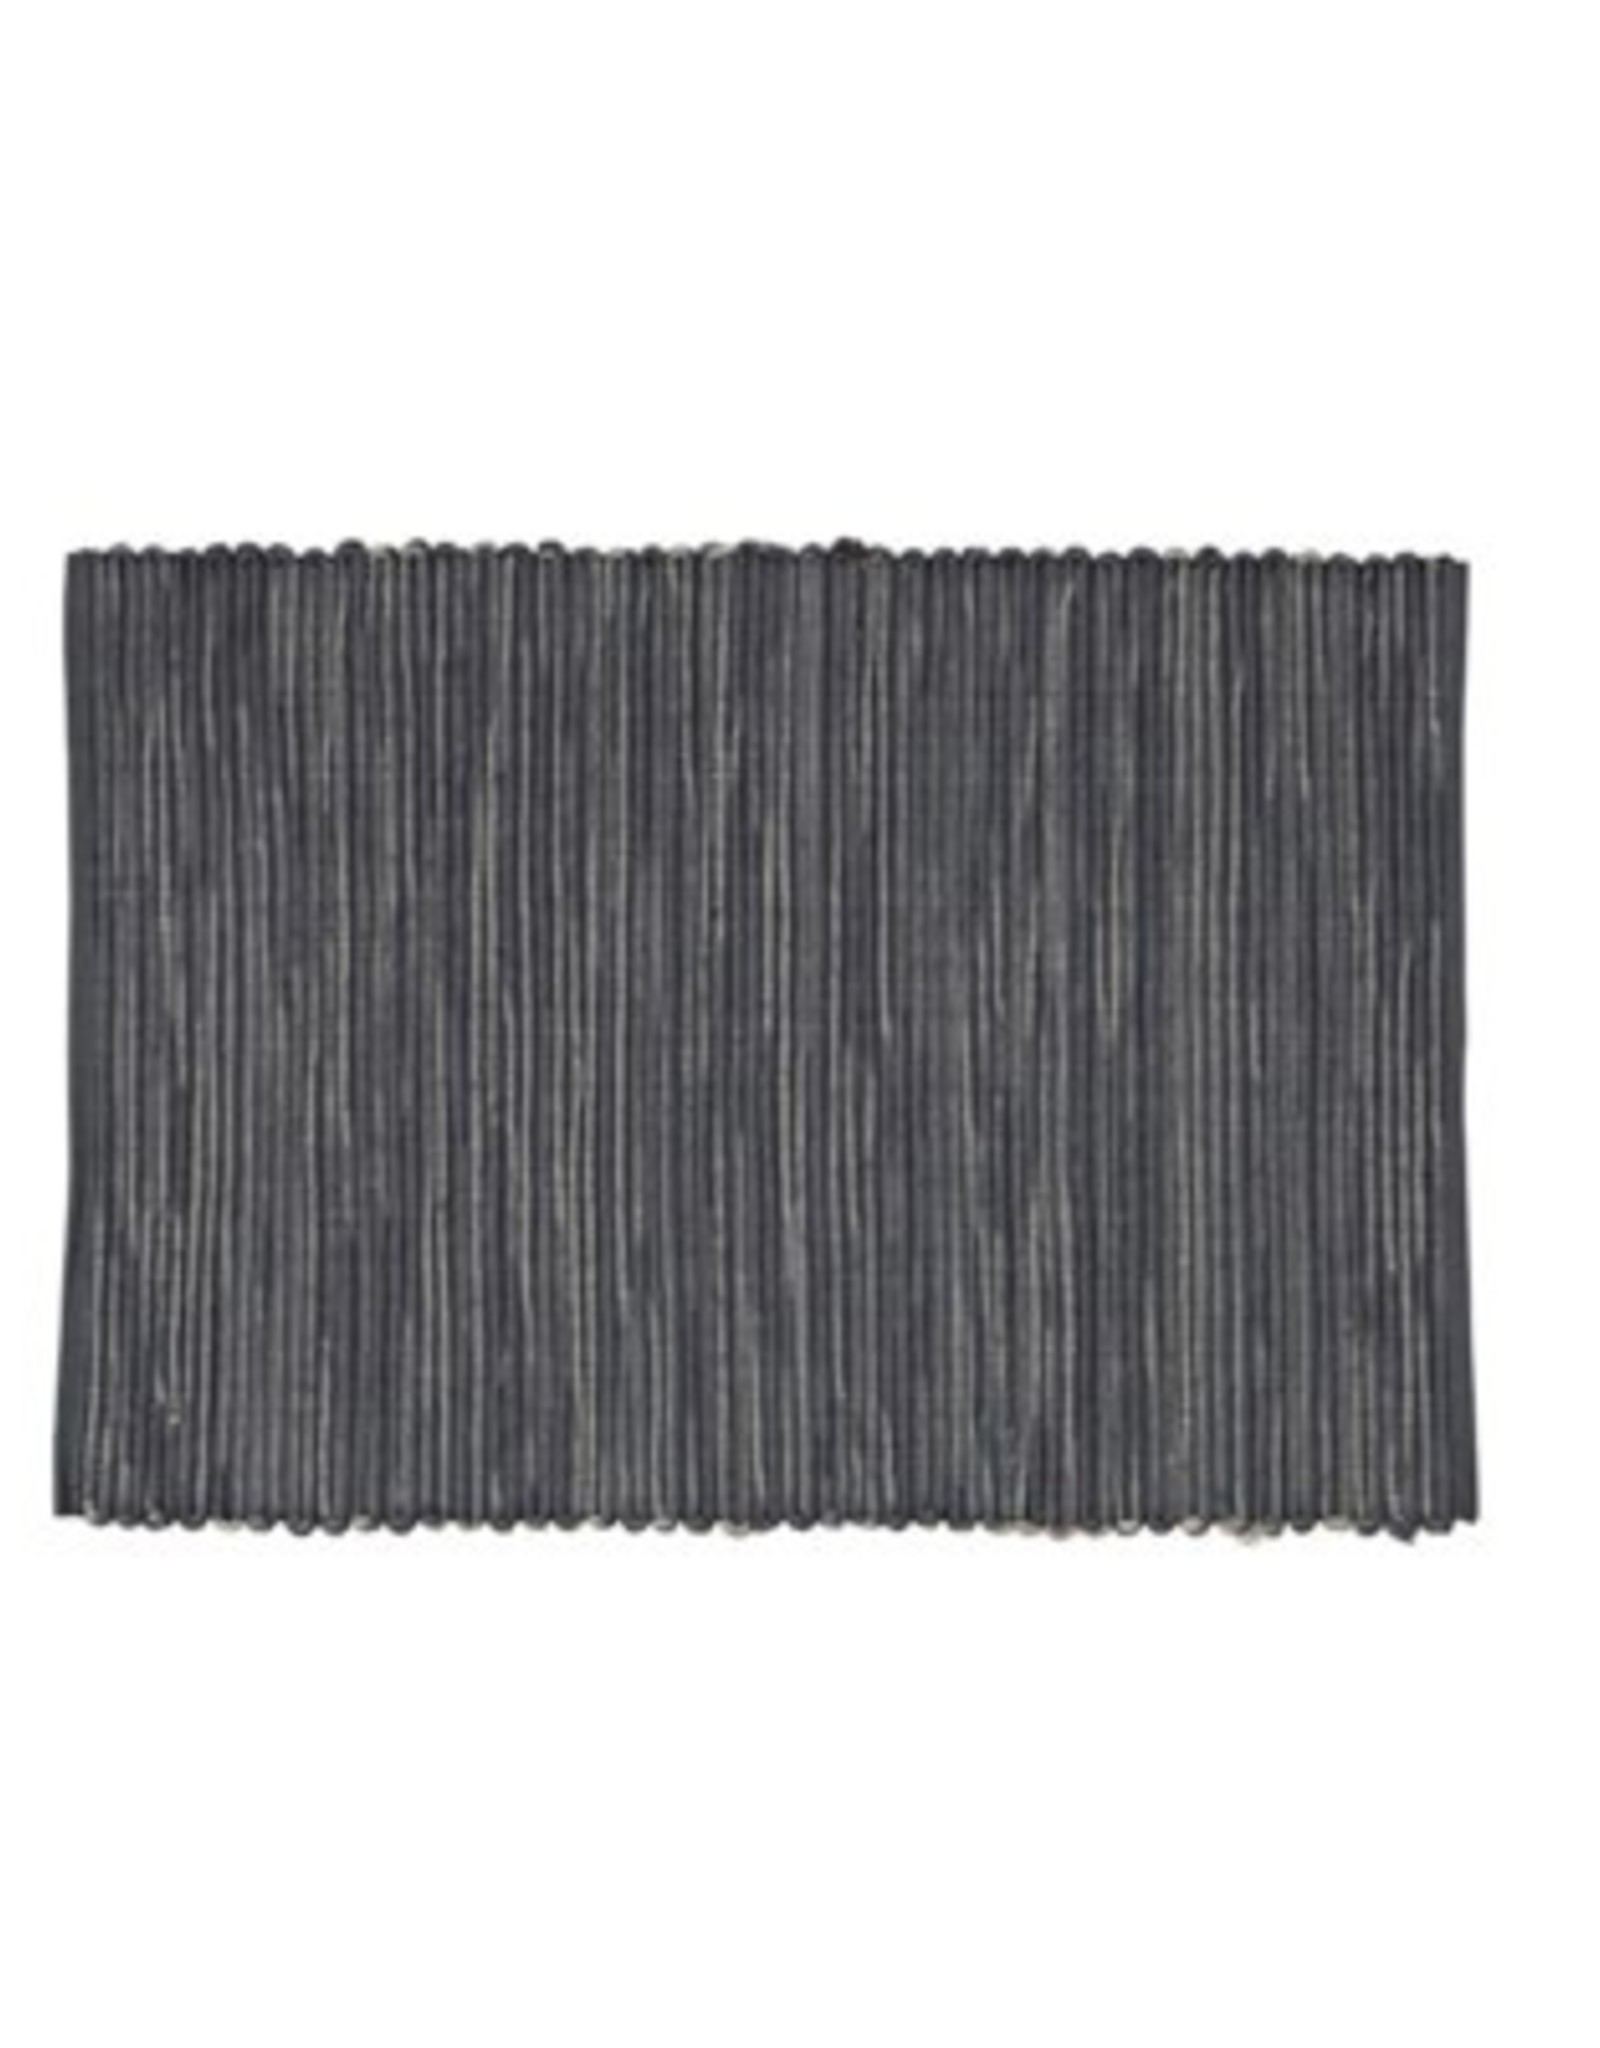 Placemat Harman Two Tone Dusty Blue